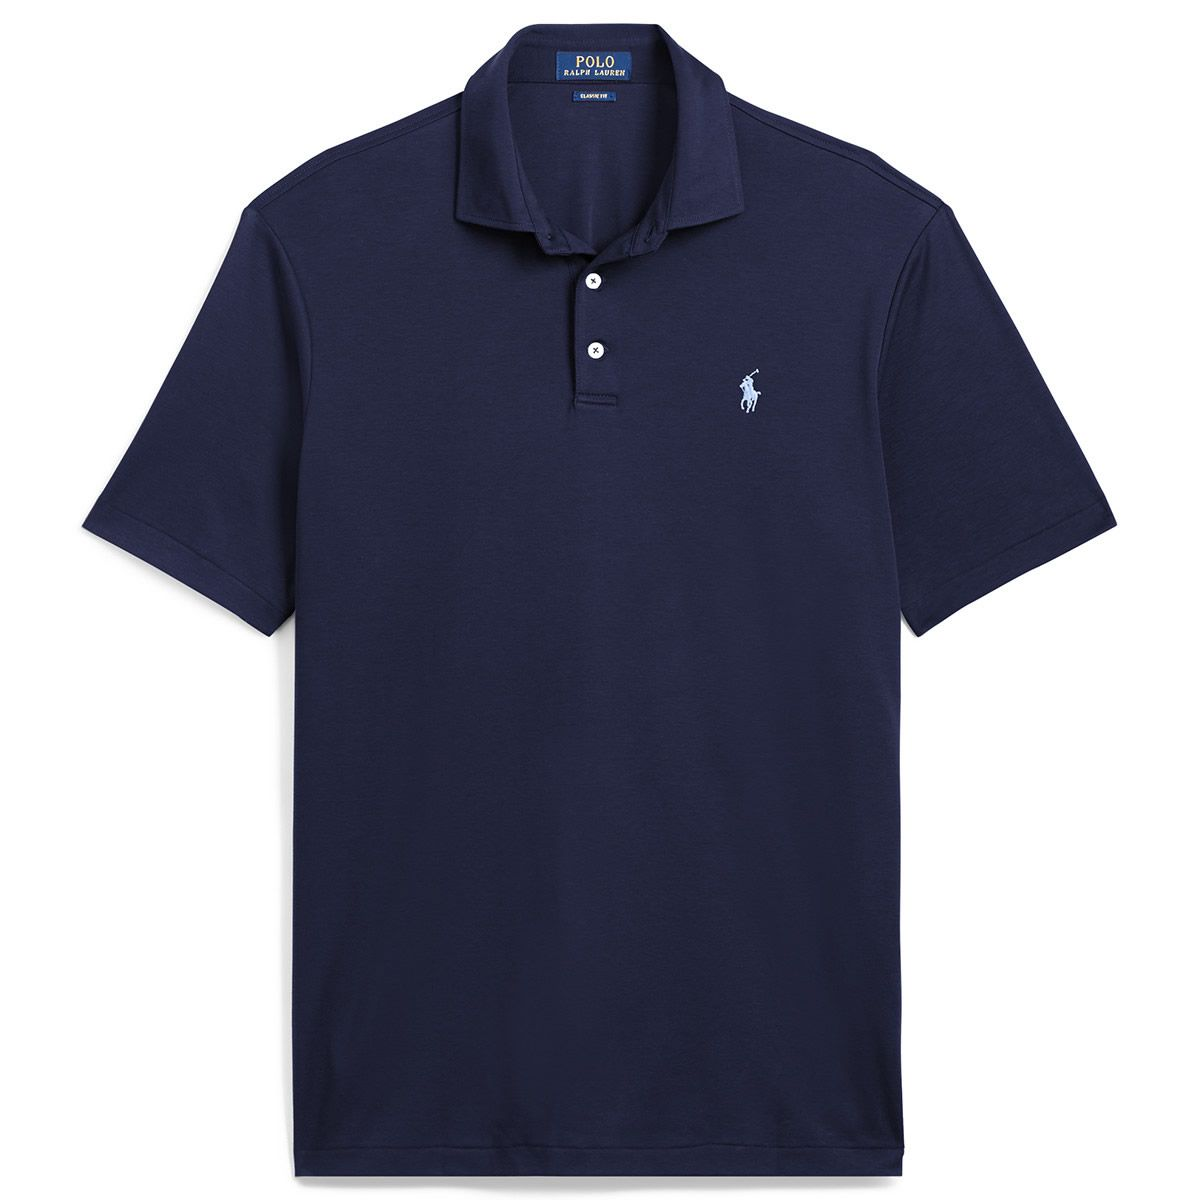 b70482856 Polo Ralph Lauren Mens Polo Shirts - Macy's